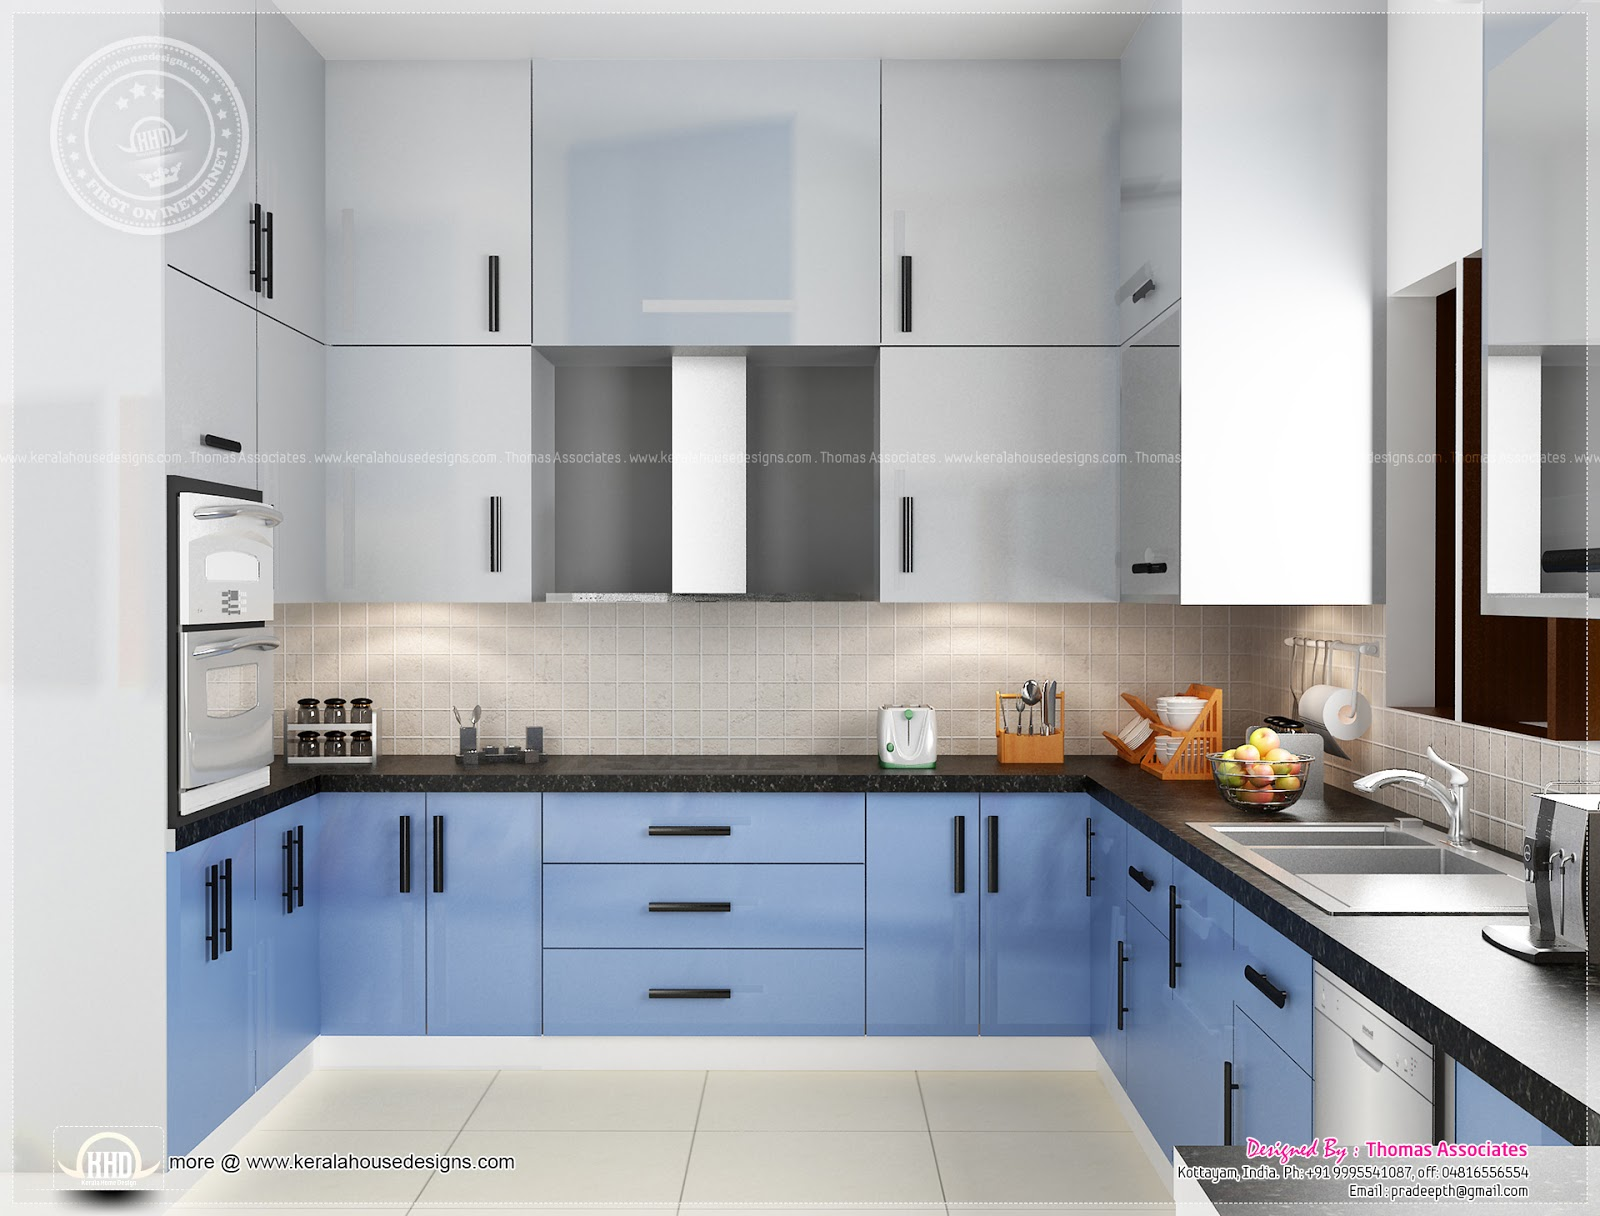 Beautiful blue toned interior designs kerala home design and floor plans Home interior design ideas for kitchen